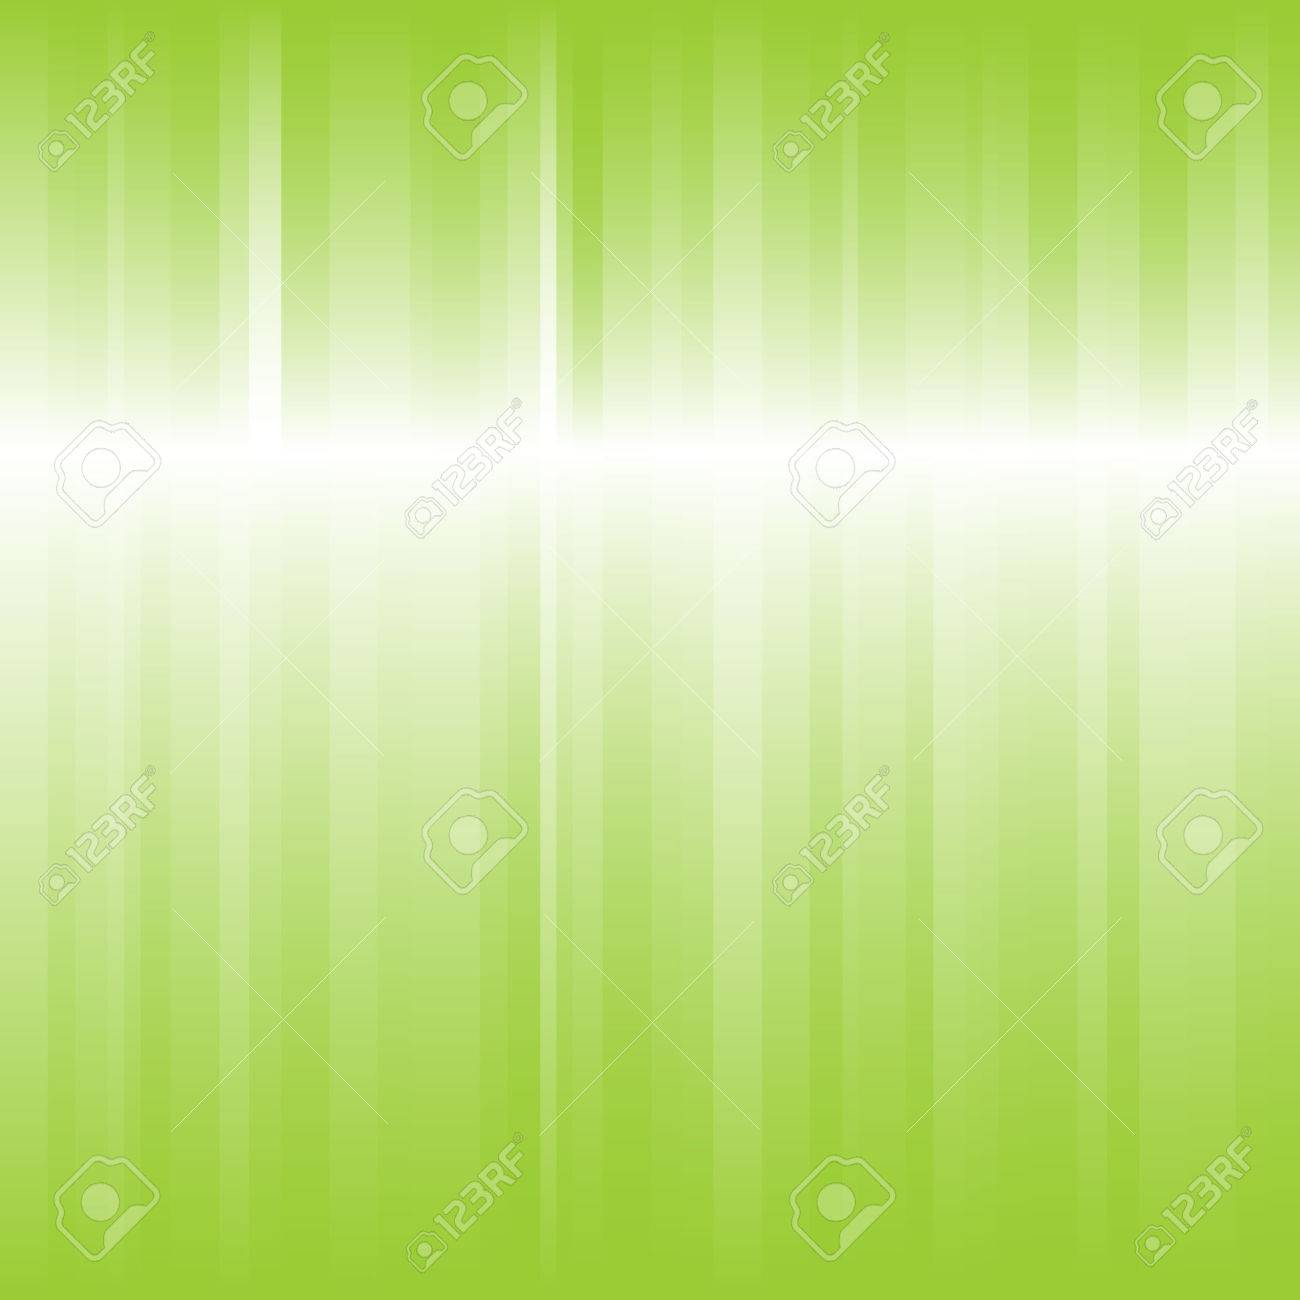 Glossy green background. Available in jpeg and eps8 formats. - 5548662